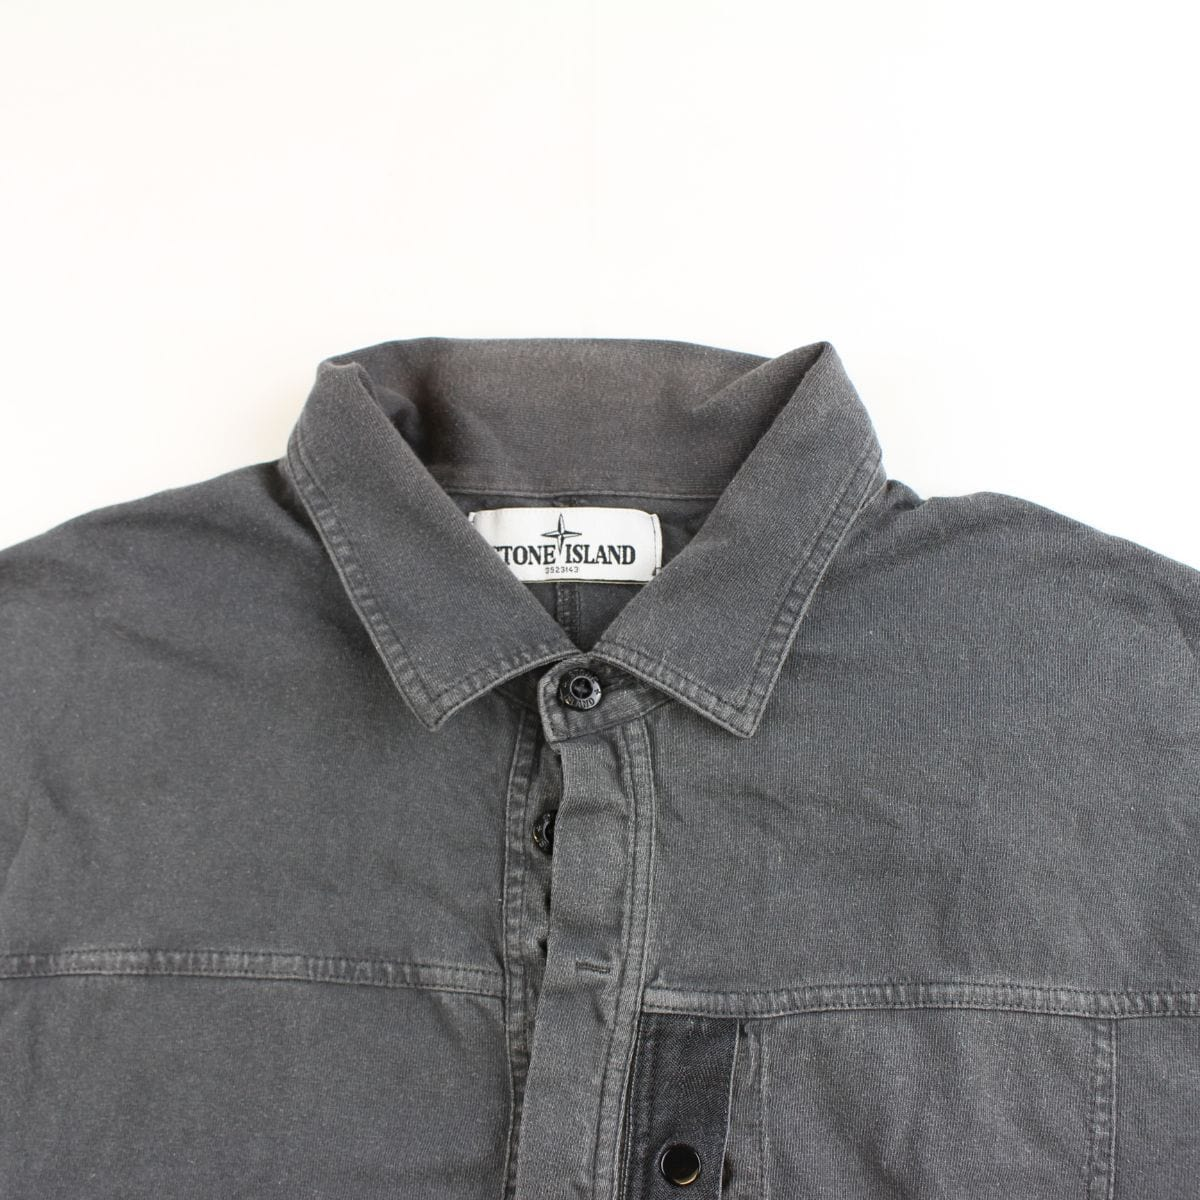 stone island quarter button up polo ls black - SaruGeneral